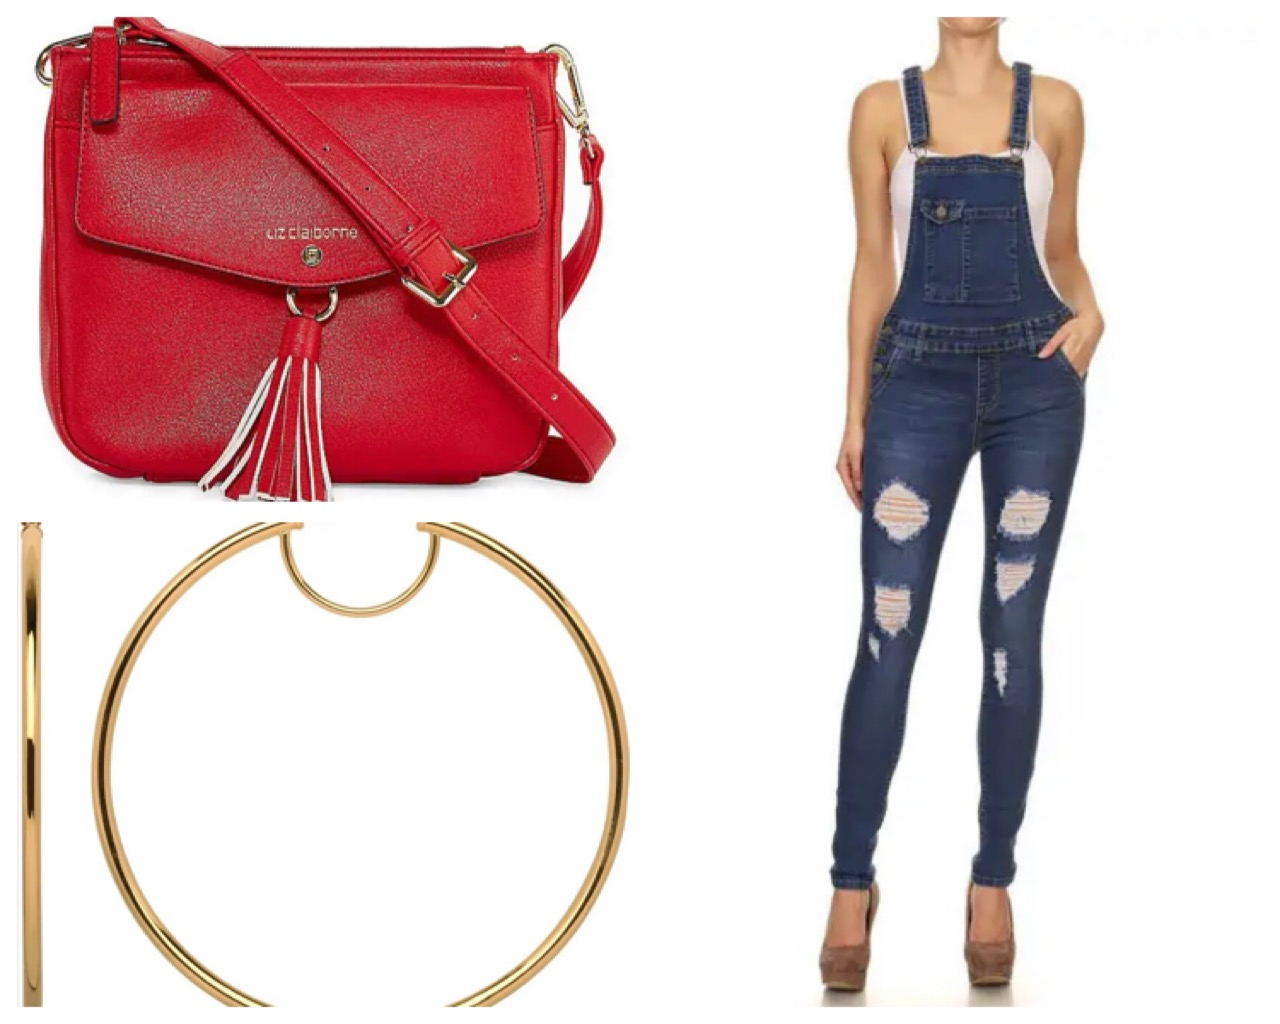 Combine the cute denim overall ($41.75) with a red leather bag ($50.00) and some oversized yellow hoop-earrings ($62.99) All available in our app